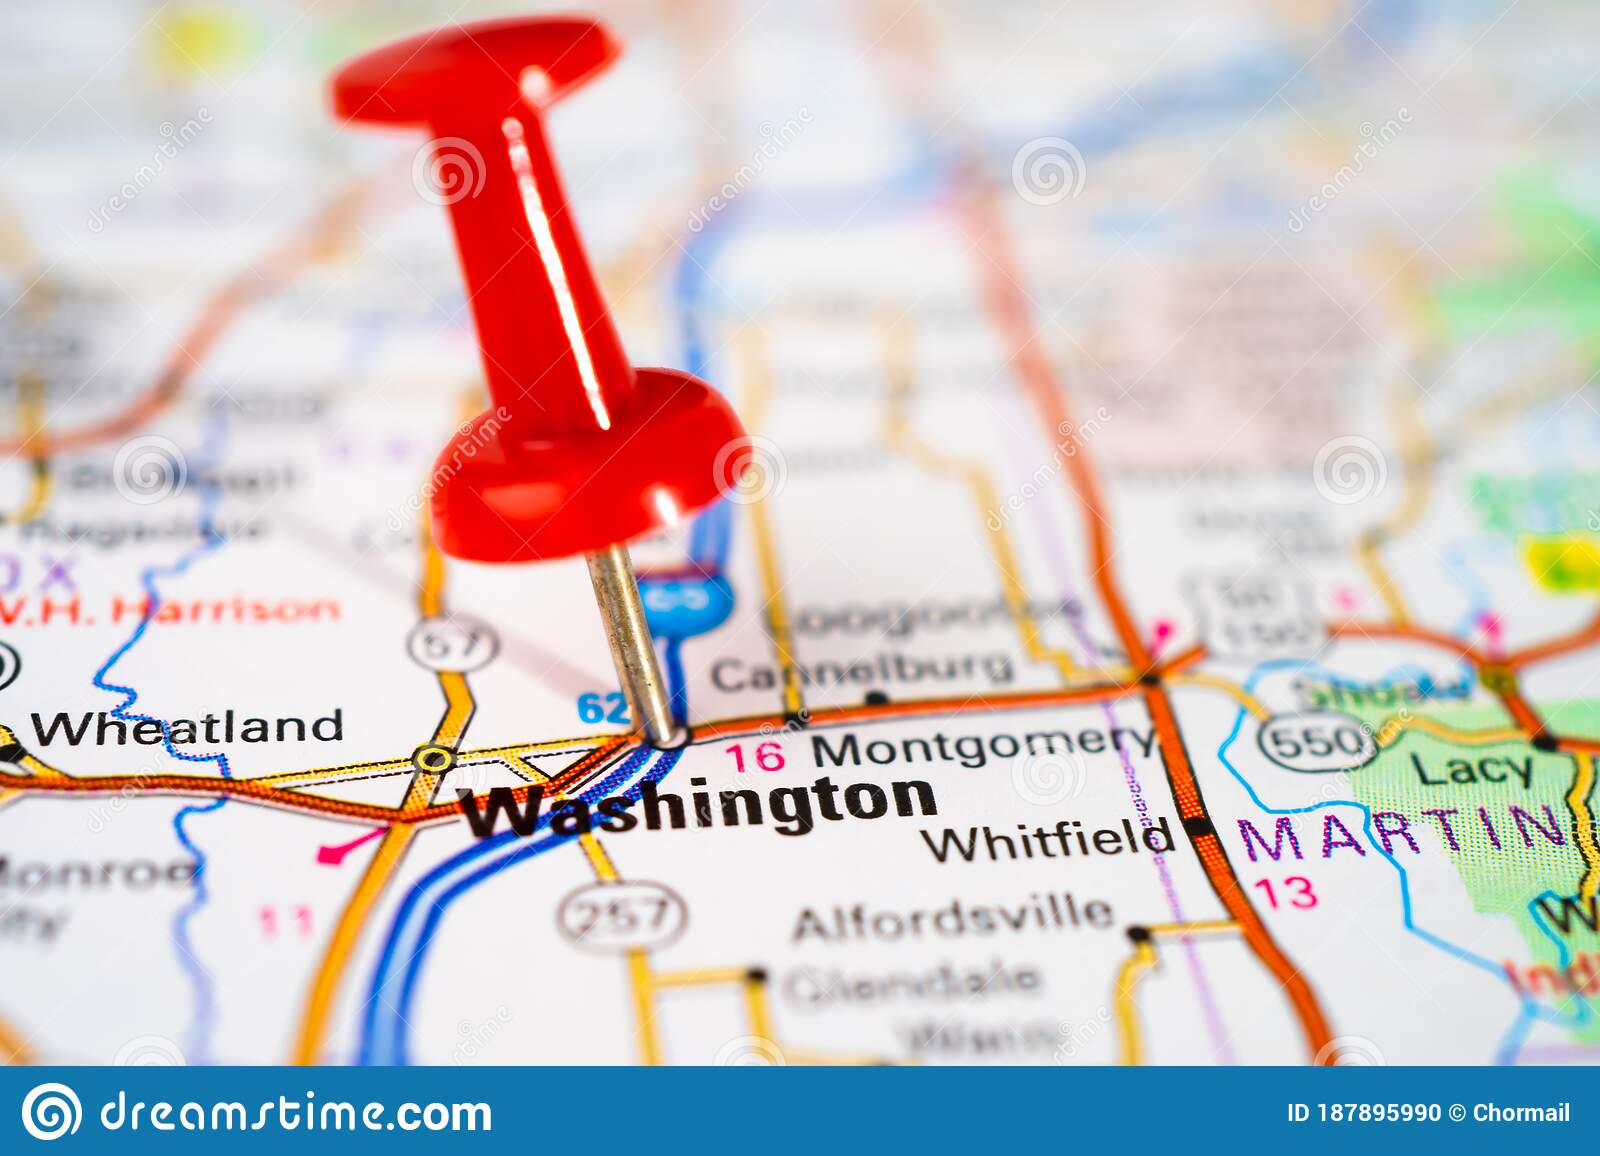 Picture of: Washington Road Map With Red Pushpin City In The United States Of America Usa Stock Photo Image Of Country Global 187895990